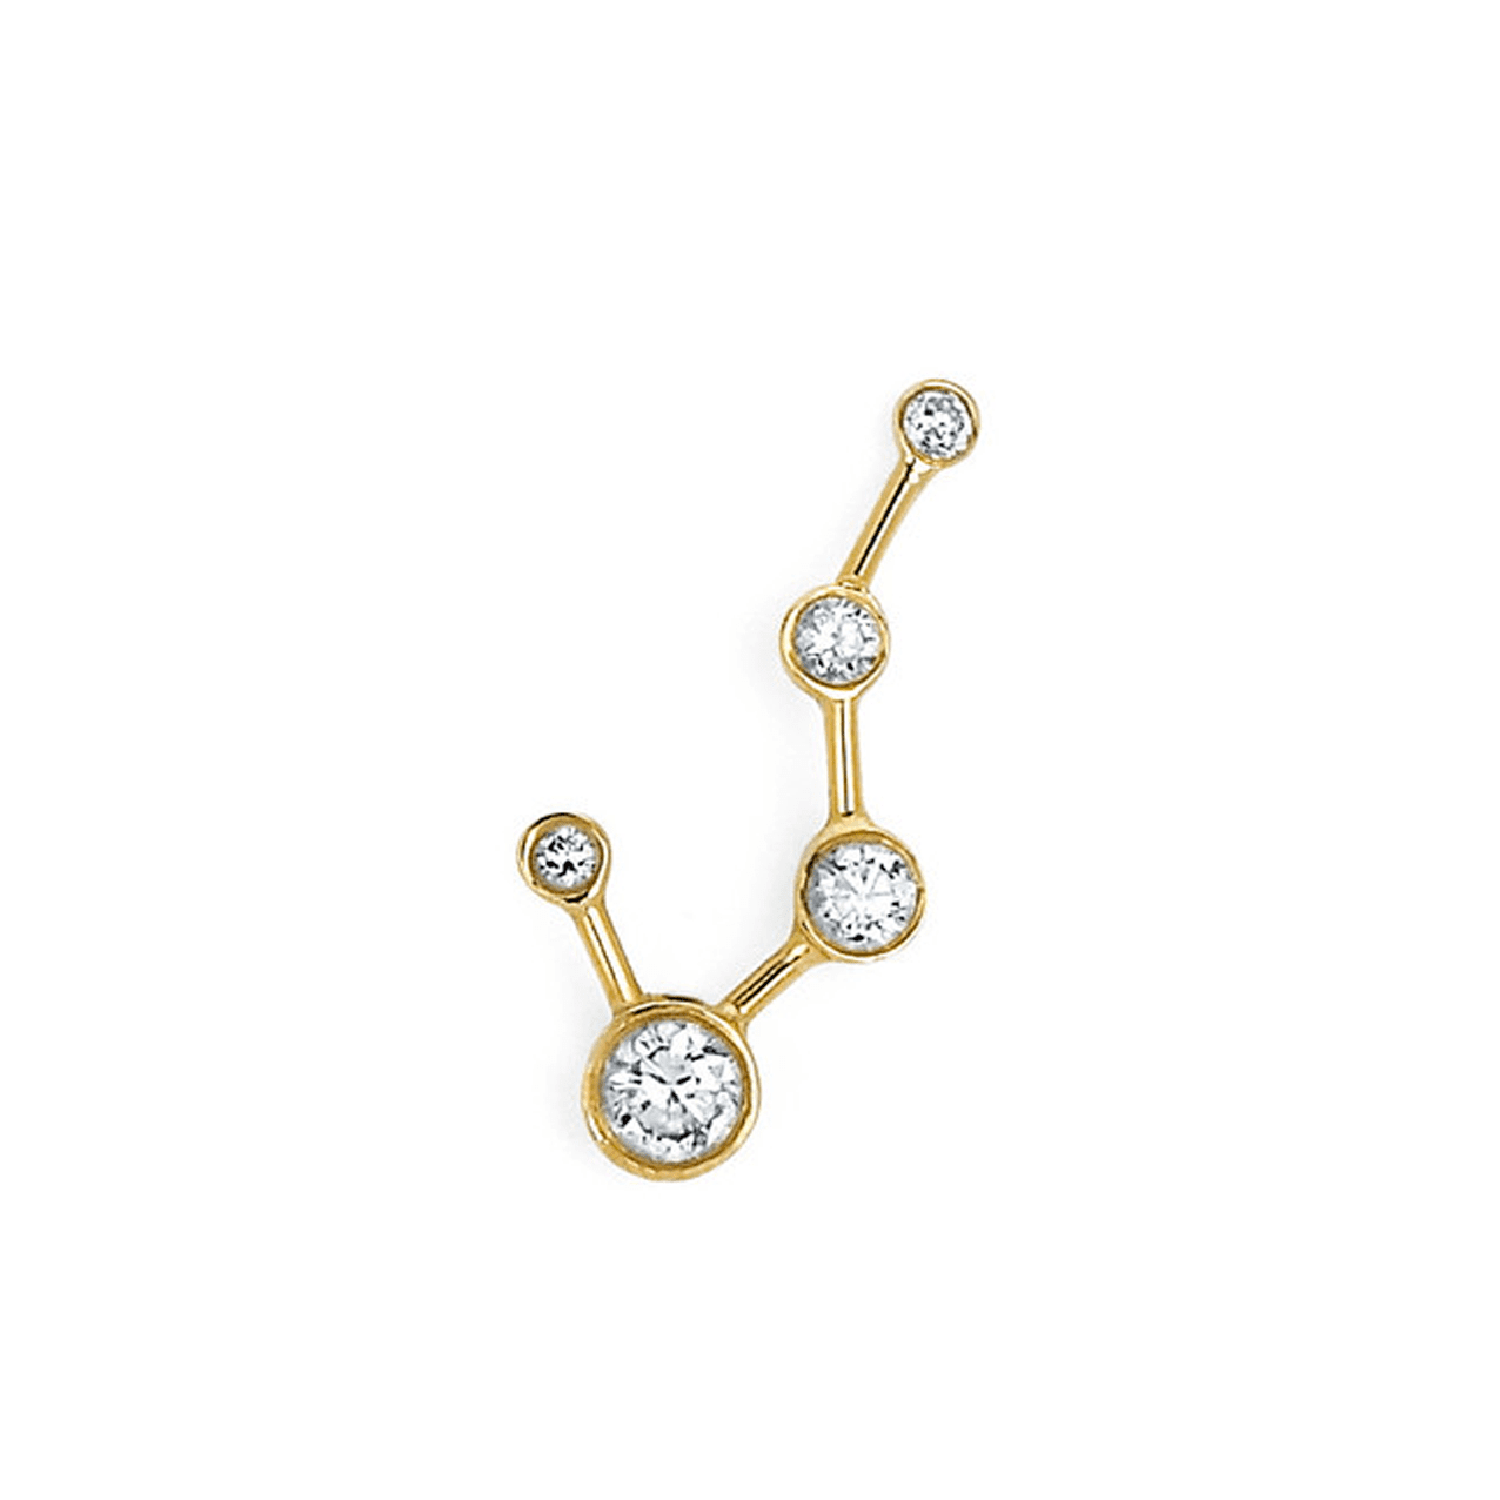 Big Dipper Constellation White Sapphire Earrings